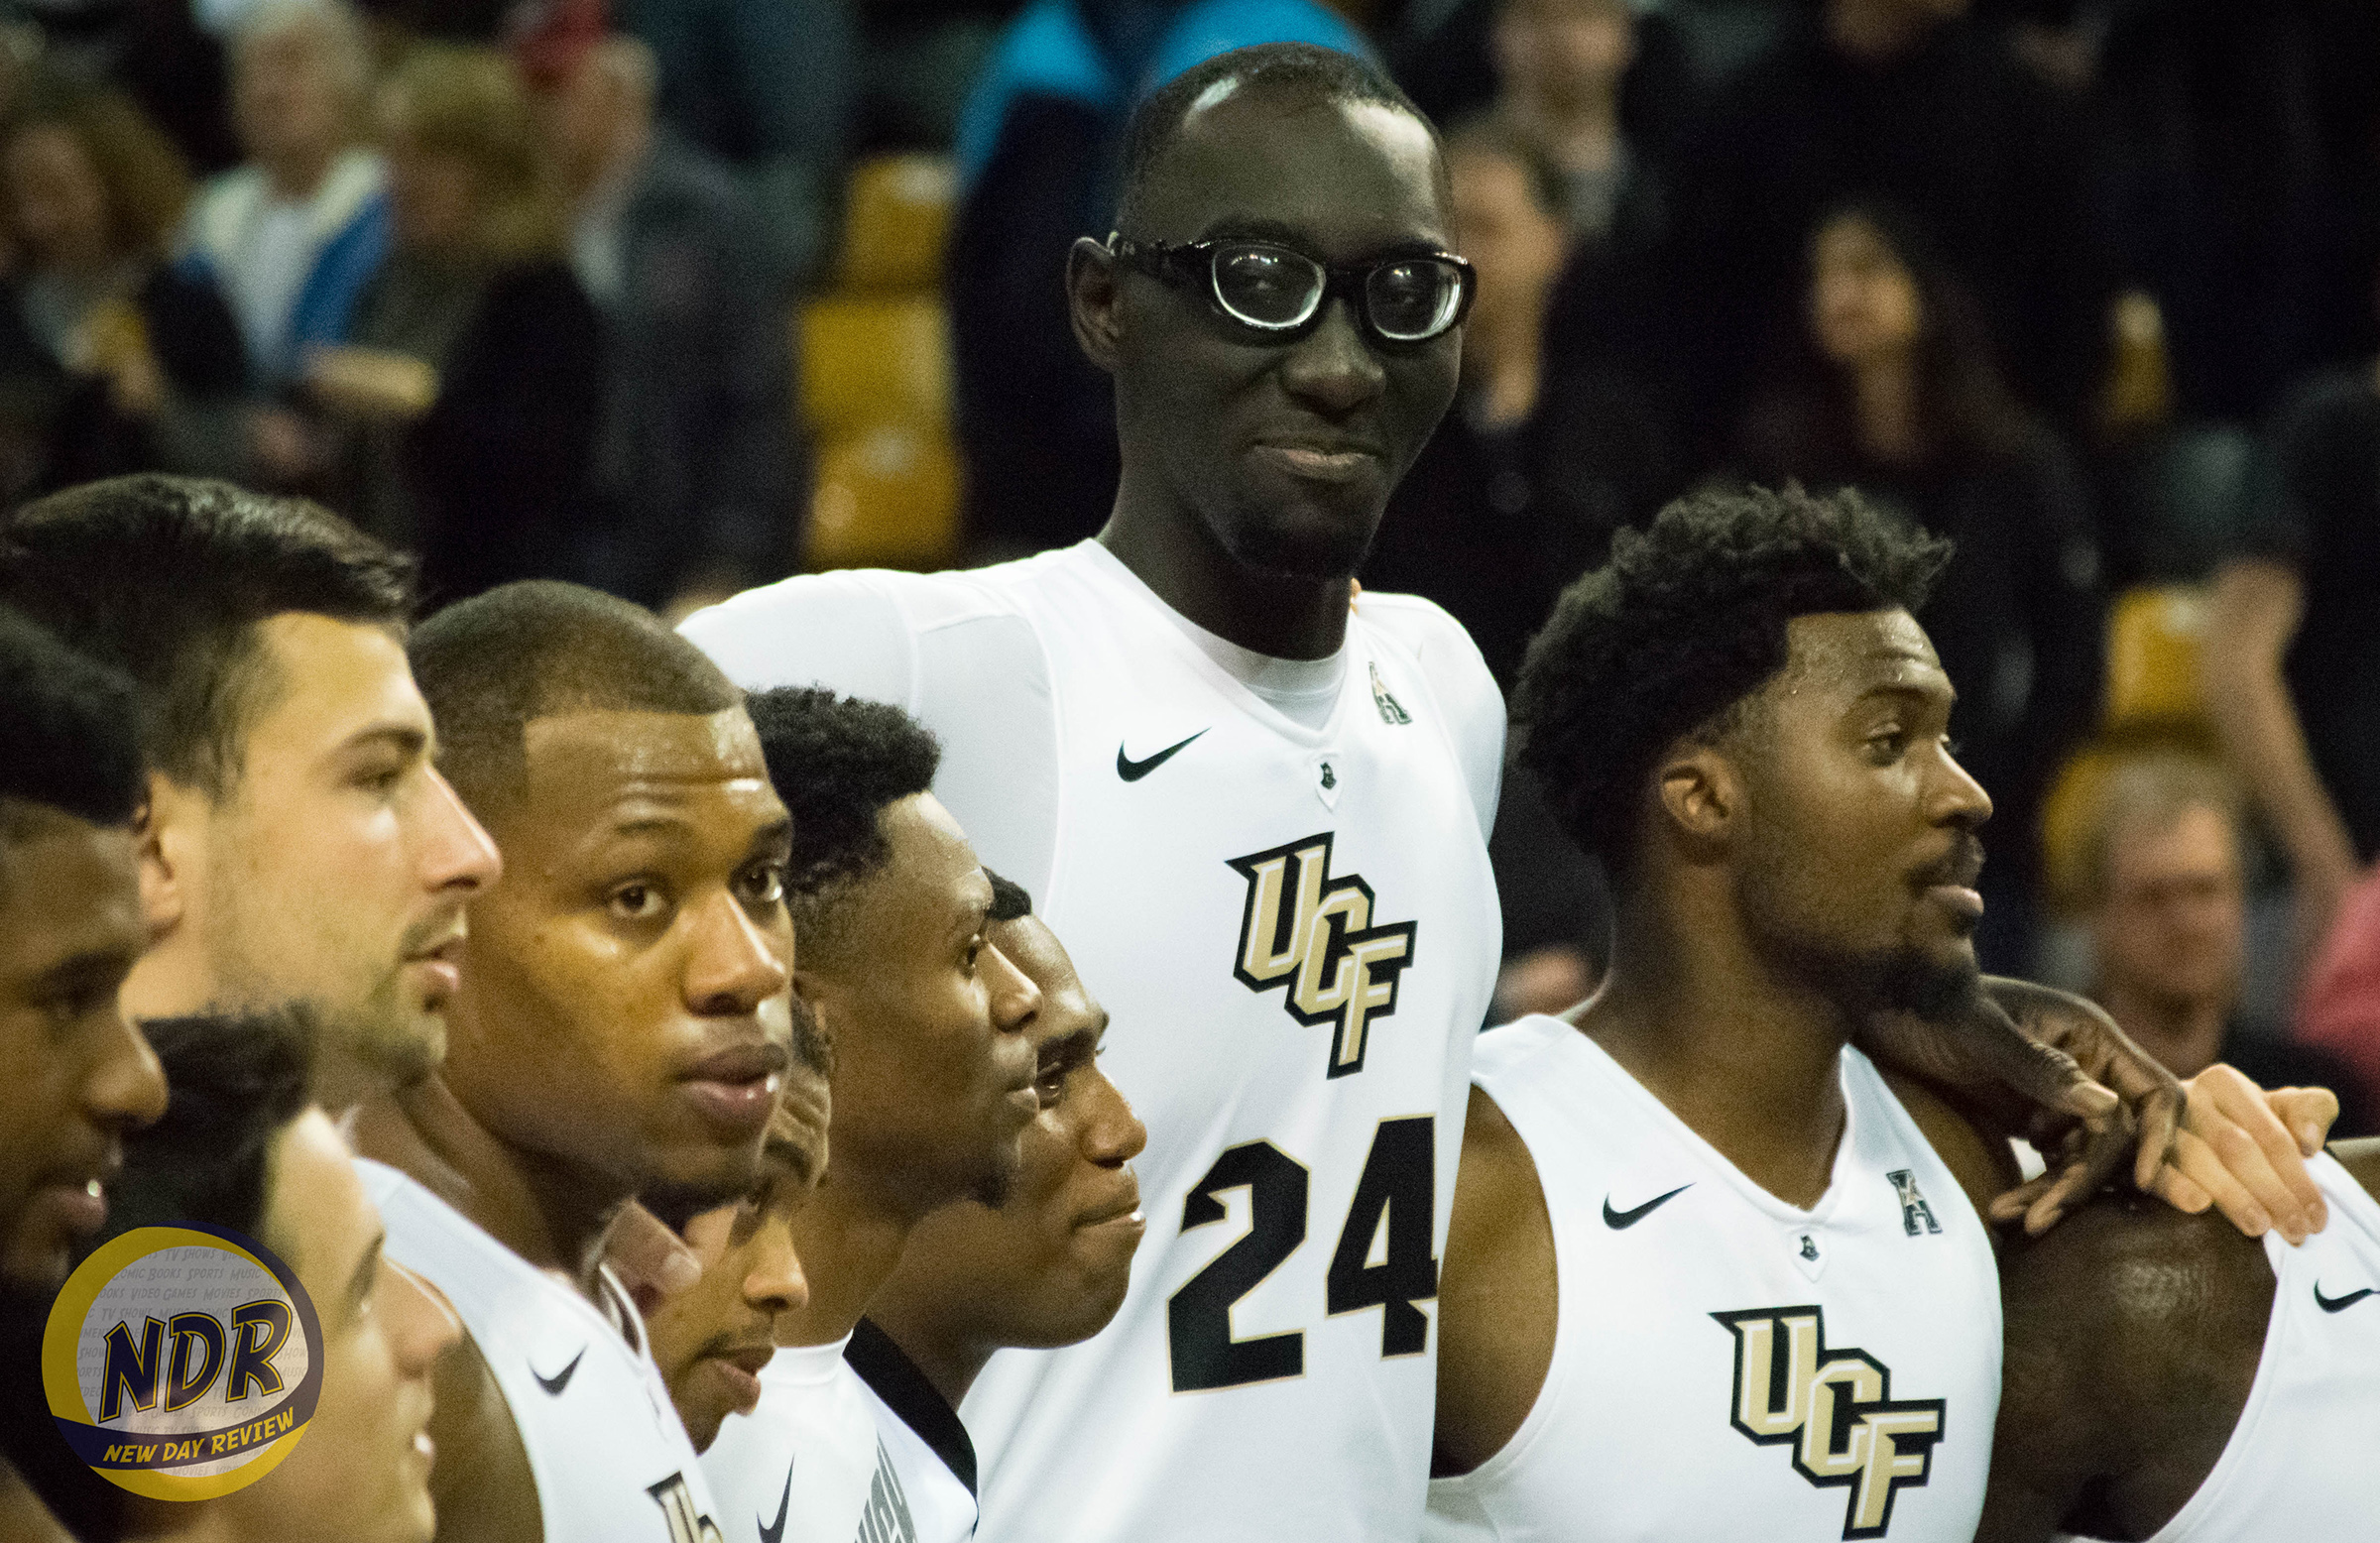 tacko fall